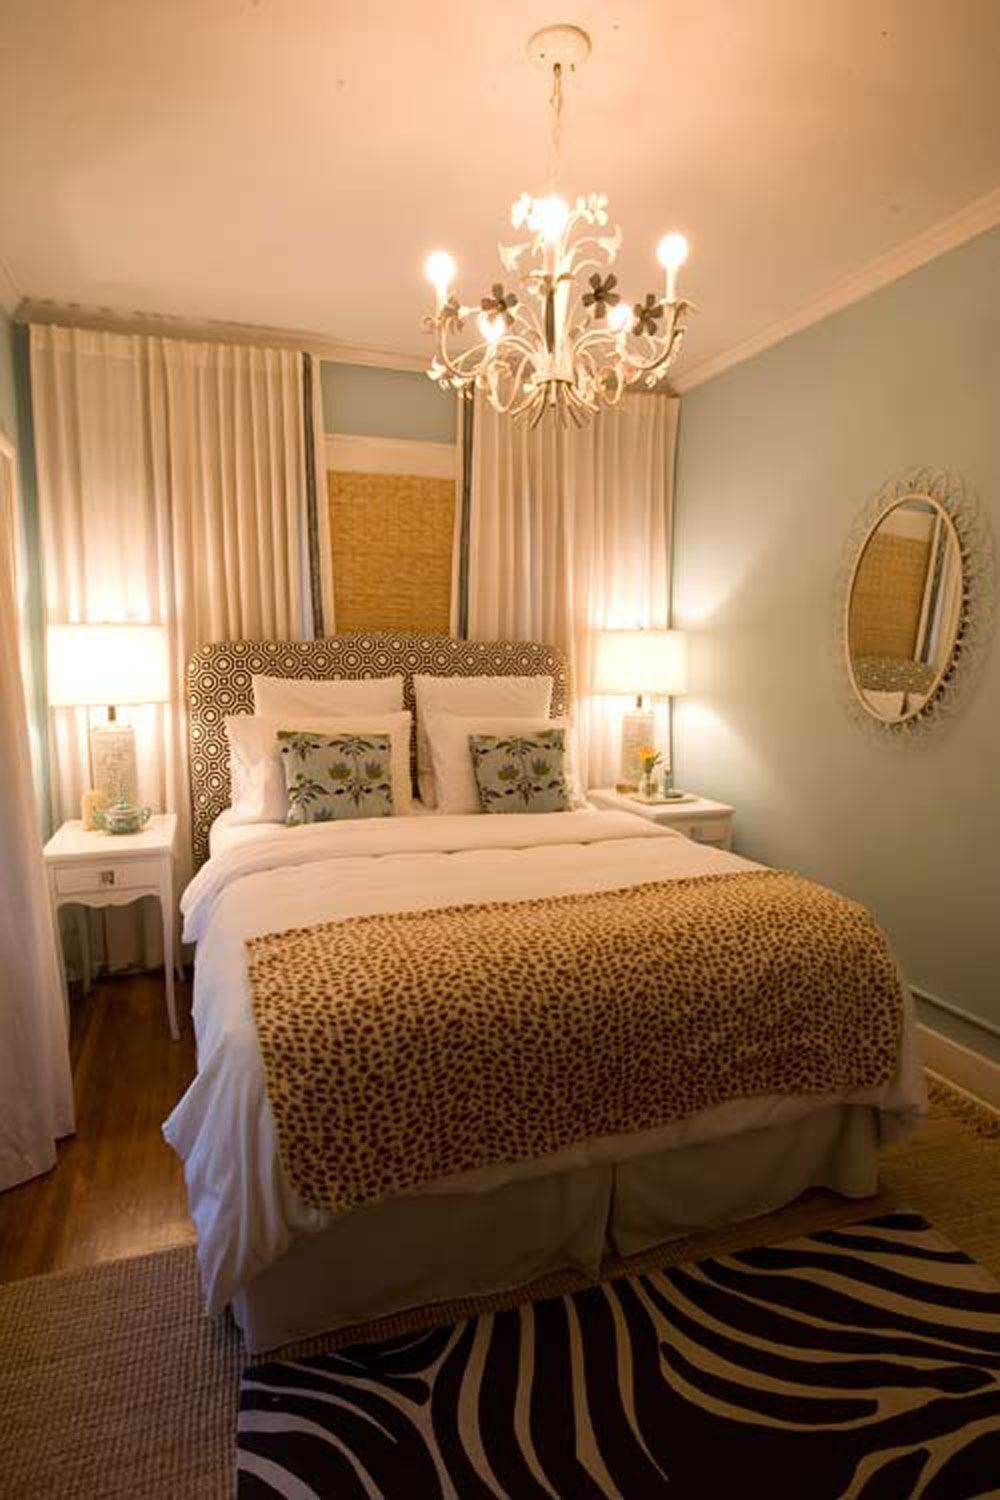 design tips for decorating a small bedroom on a budget on stunning minimalist apartment décor ideas home decor for your small apartment id=27969